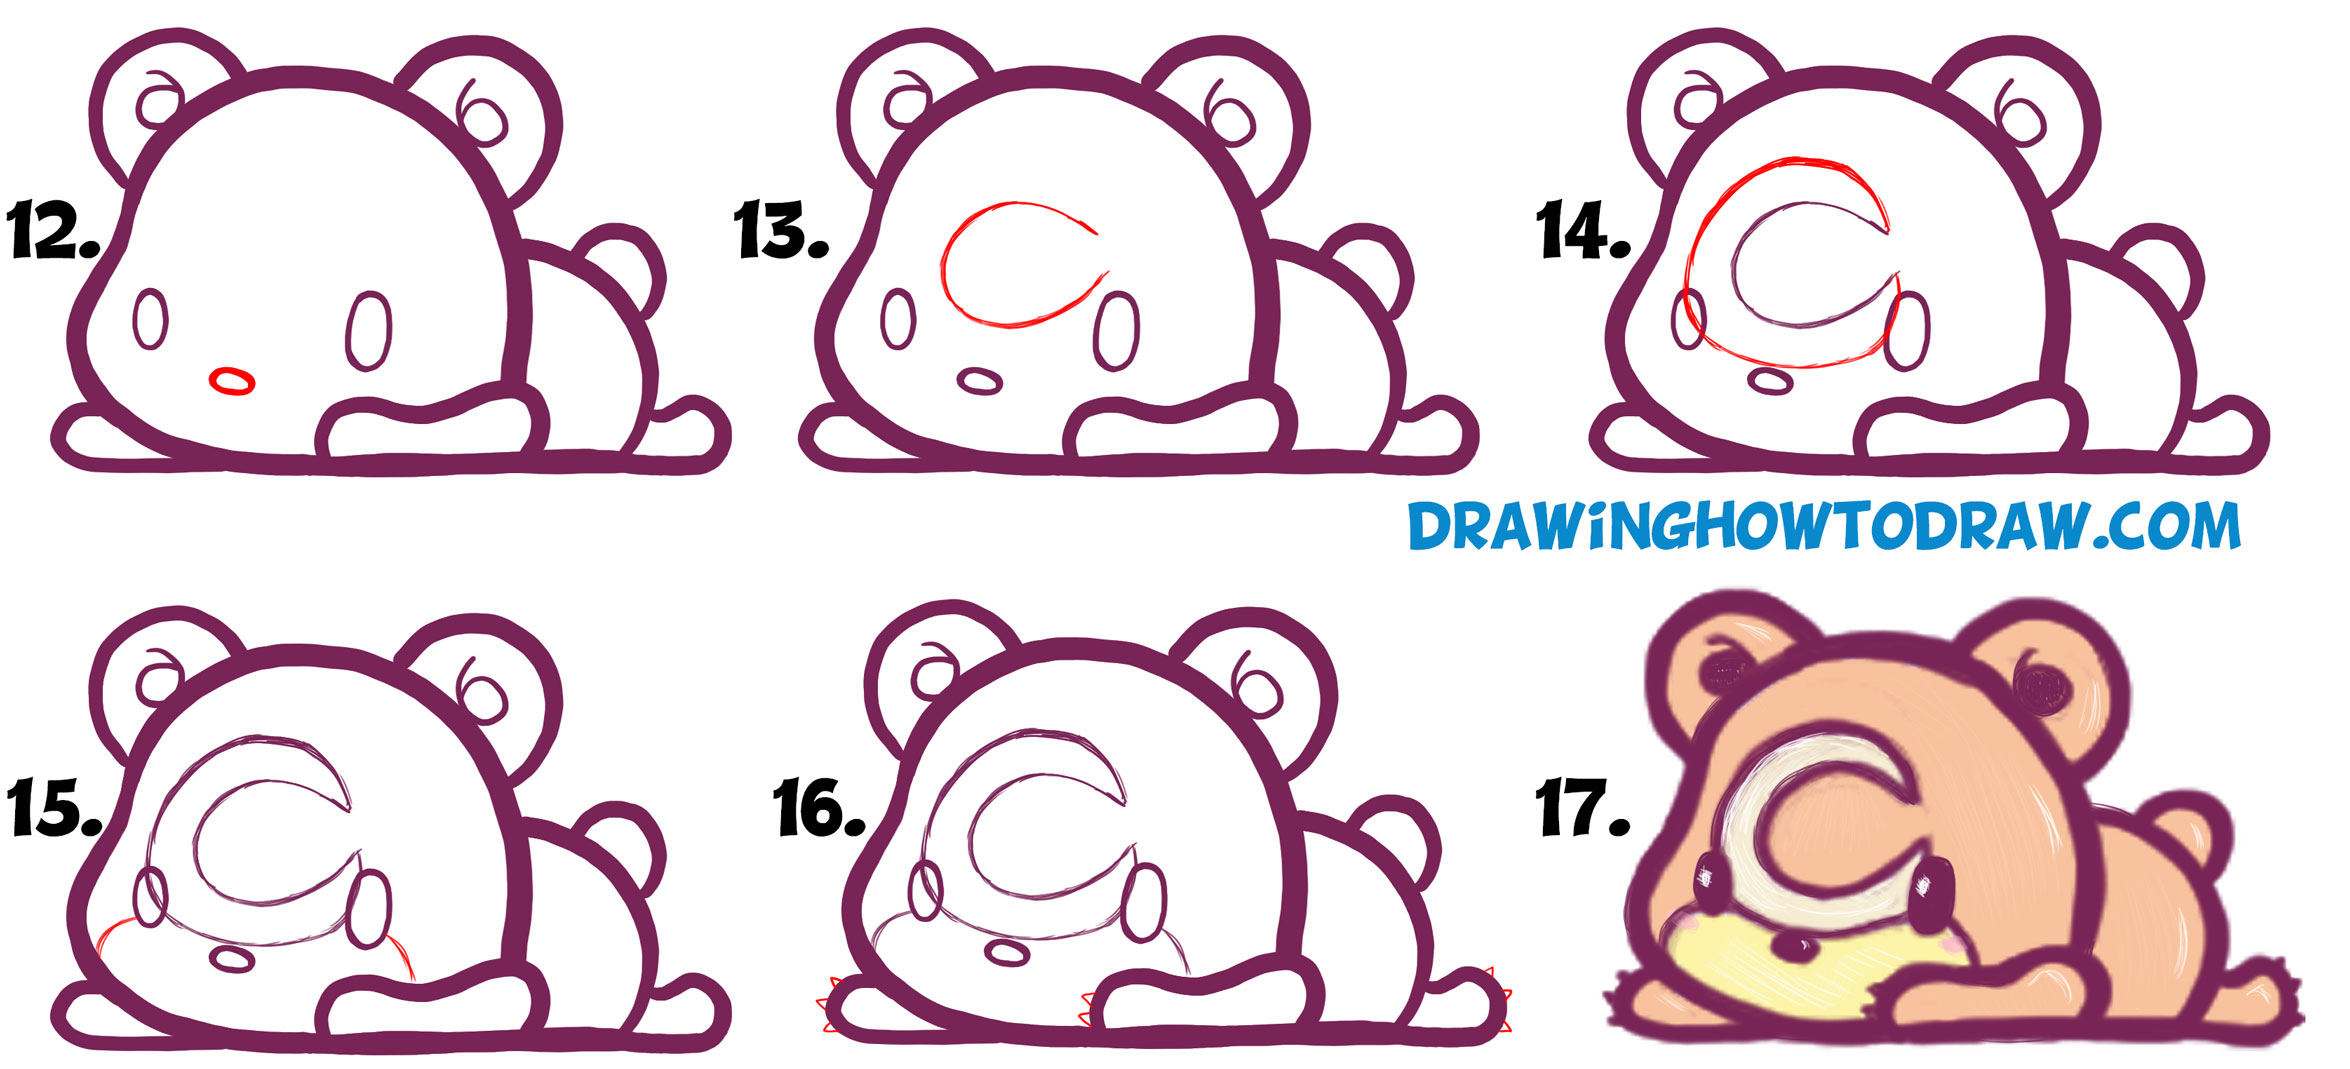 Learn How to Draw Cute Teddiursa Pokemon with Easy Step by Step Drawing Tutorial for Kids & Beginners